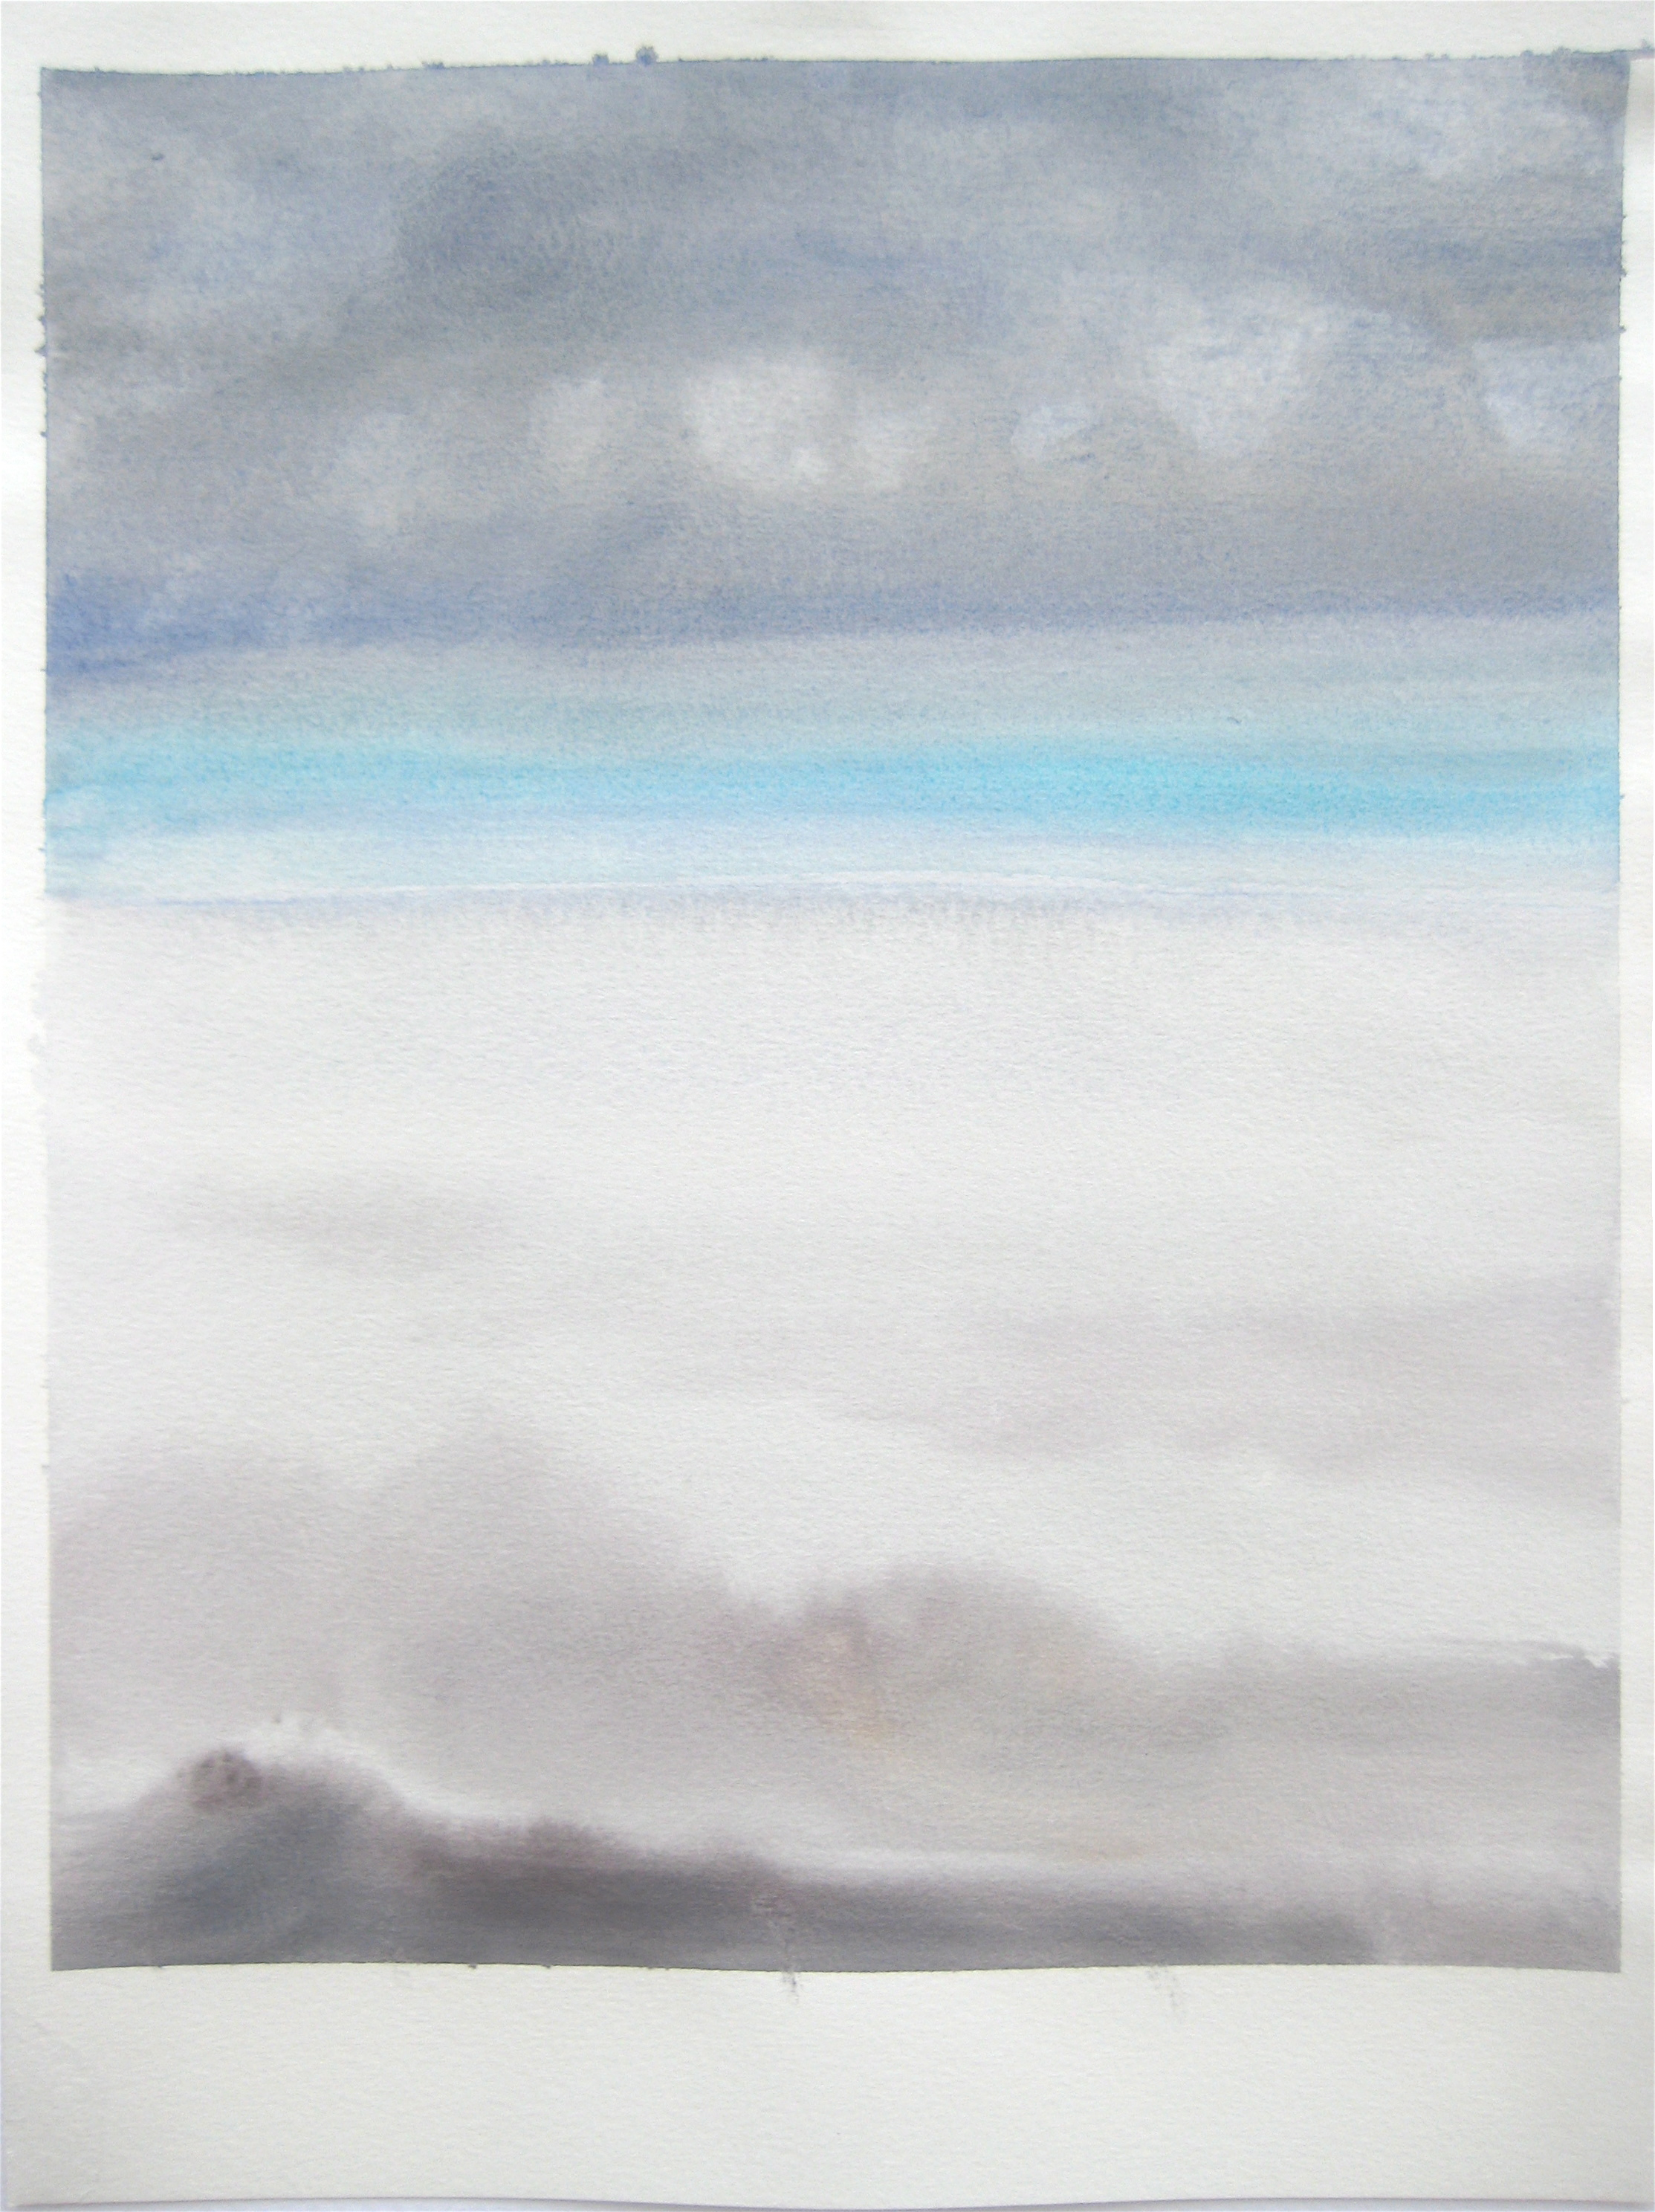 """Sky #2.3-2007, 2007, watercolor on paper paper: 12 6/8""""x9 1/2""""; image 11""""x9"""""""